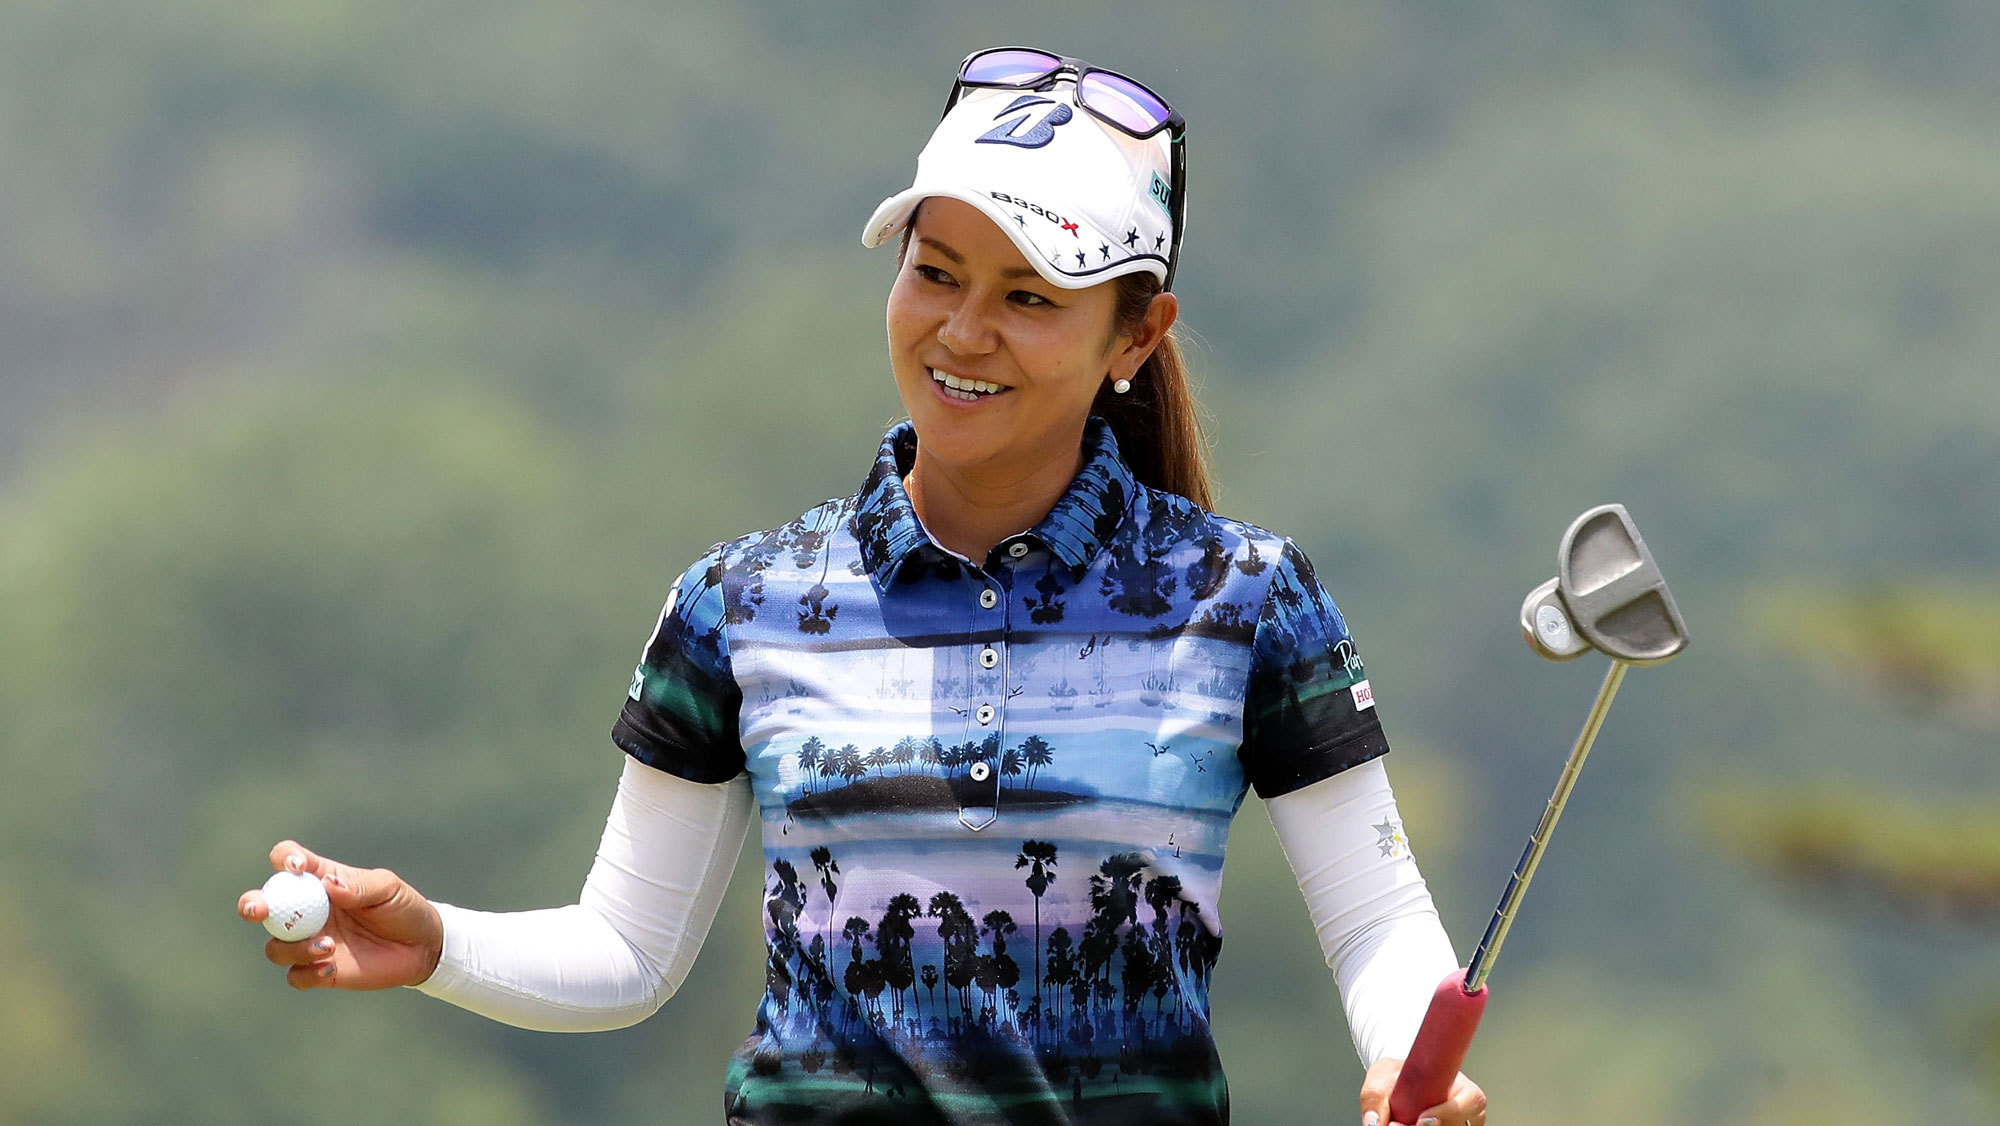 Facing Retirement, Miyazato Happy to Return to Arkansas